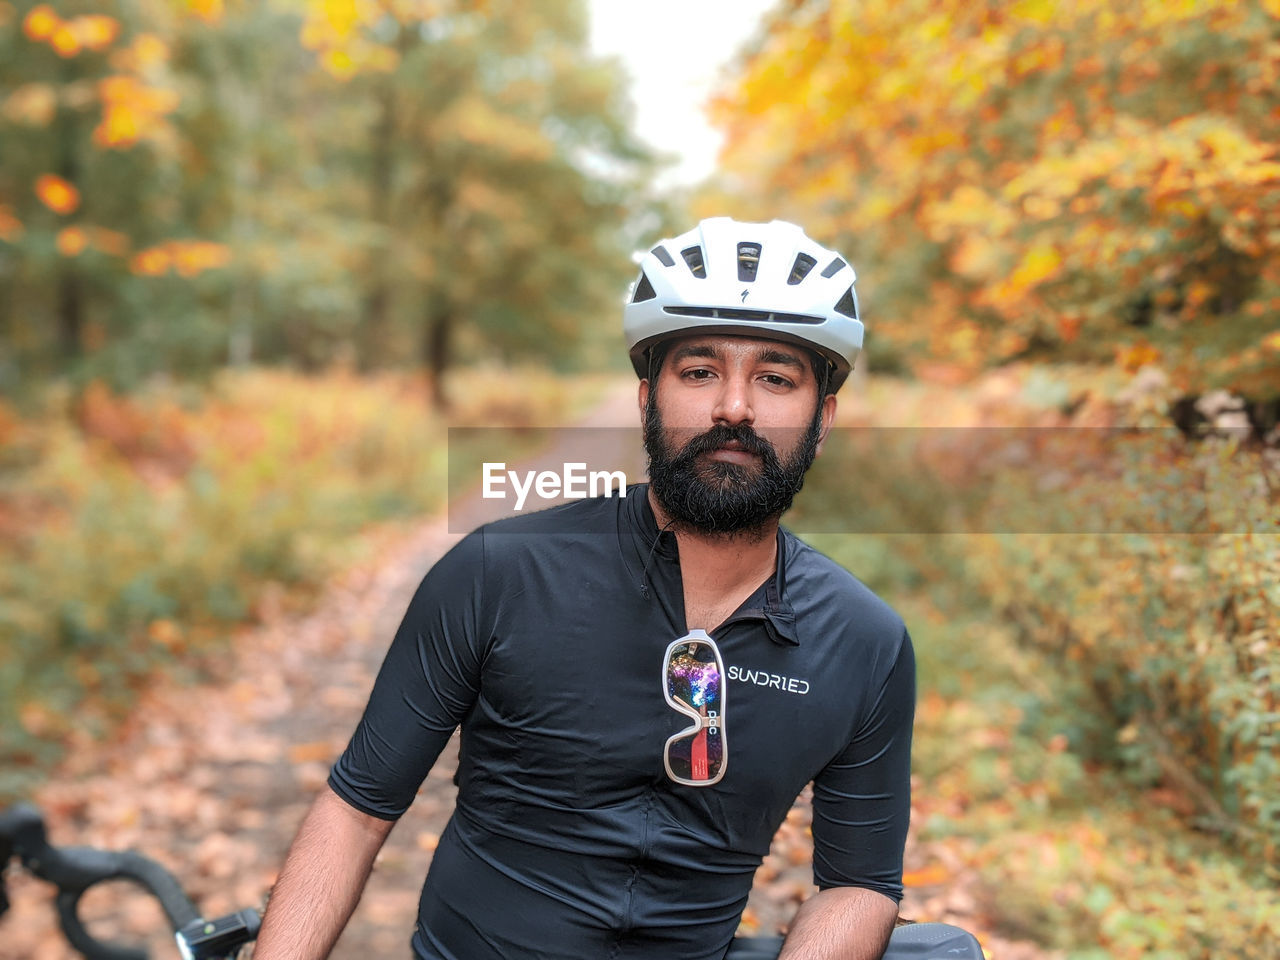 PORTRAIT OF MAN WITH BICYCLE DURING AUTUMN